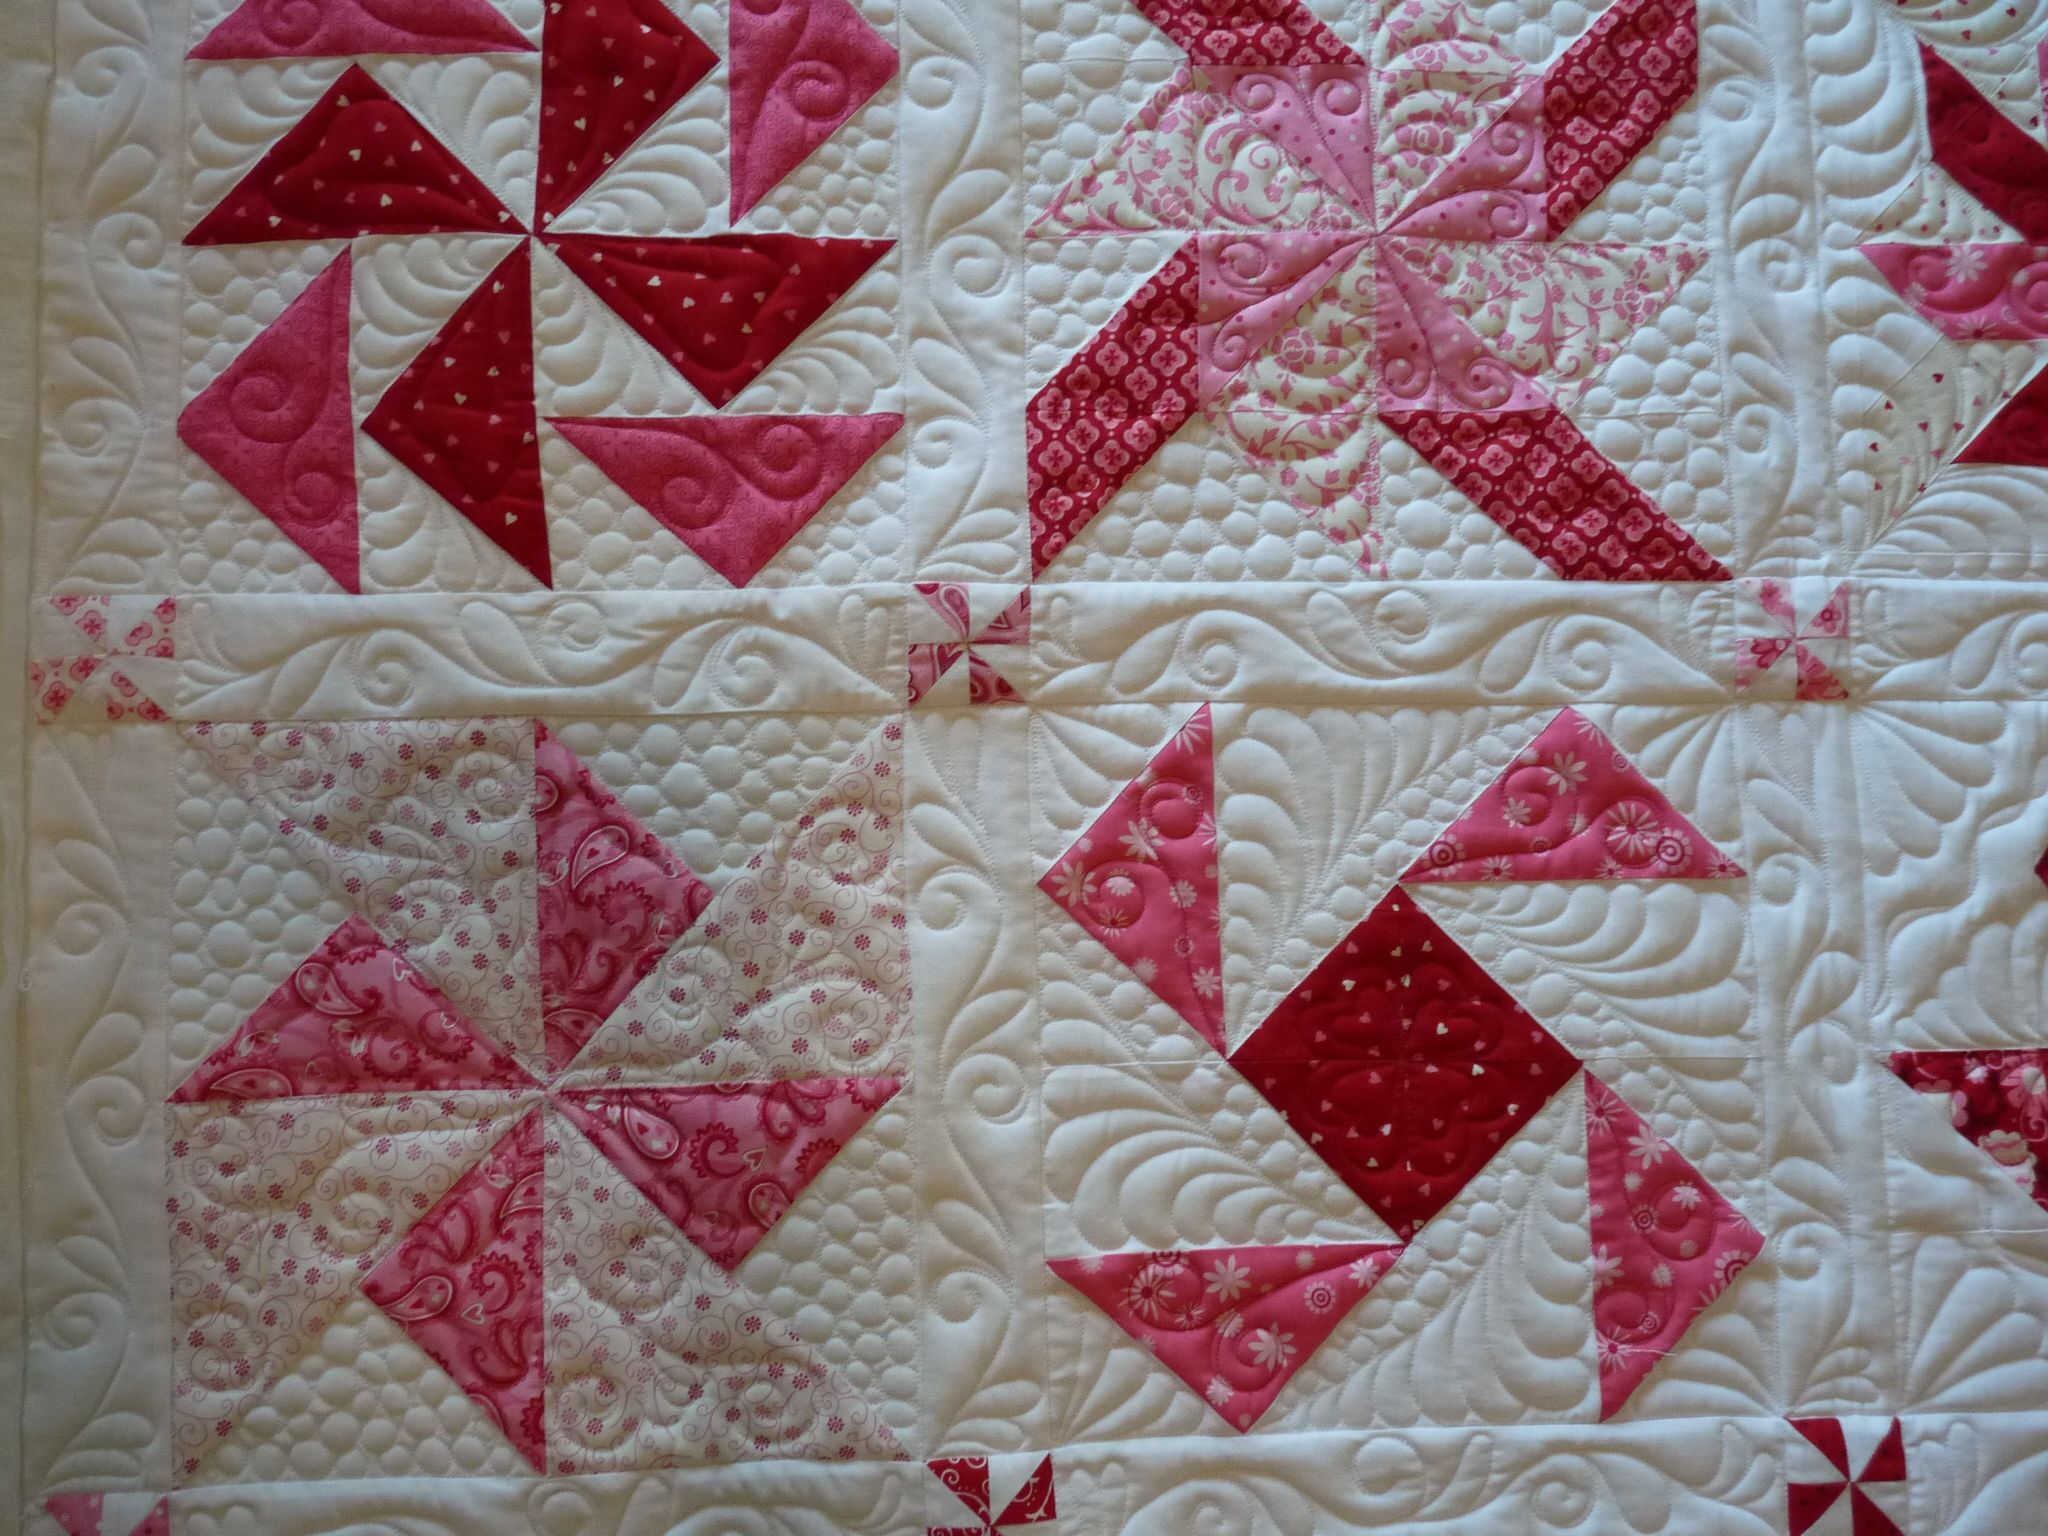 Pin by Debby Allen on Quilting Pinterest